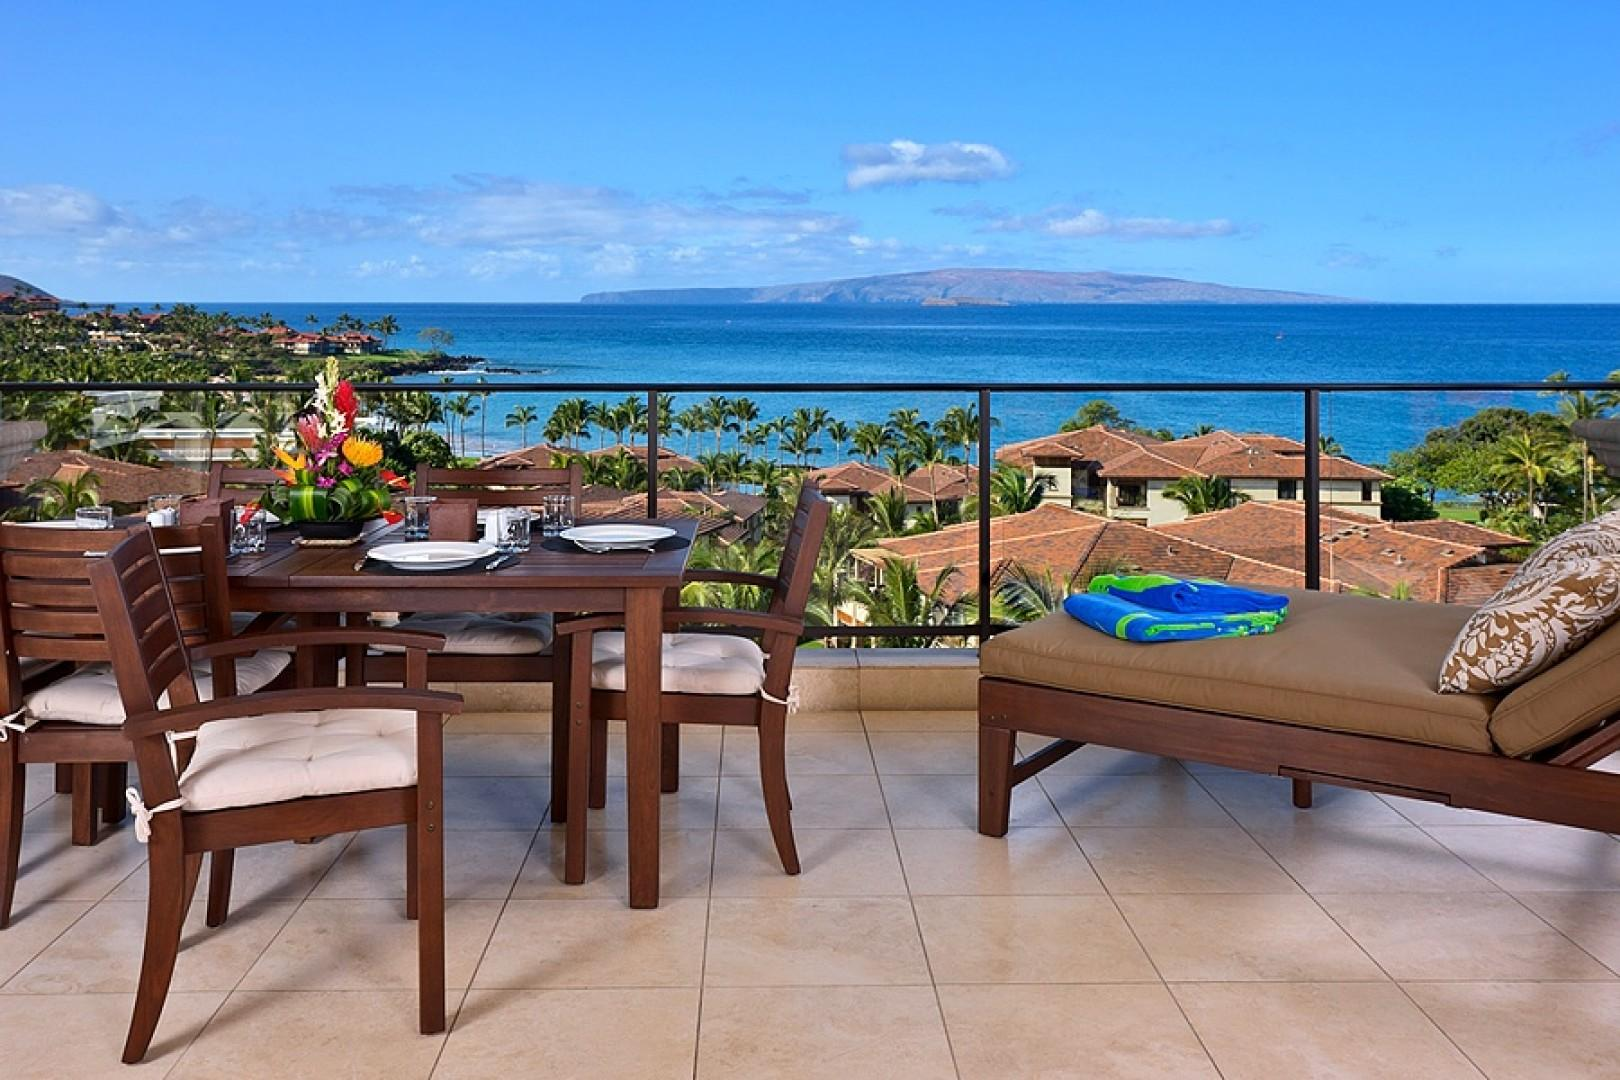 Patio Dining for Six Guests and Lounging for Two on a Double Reclining Chaise at Sandy Surf K508